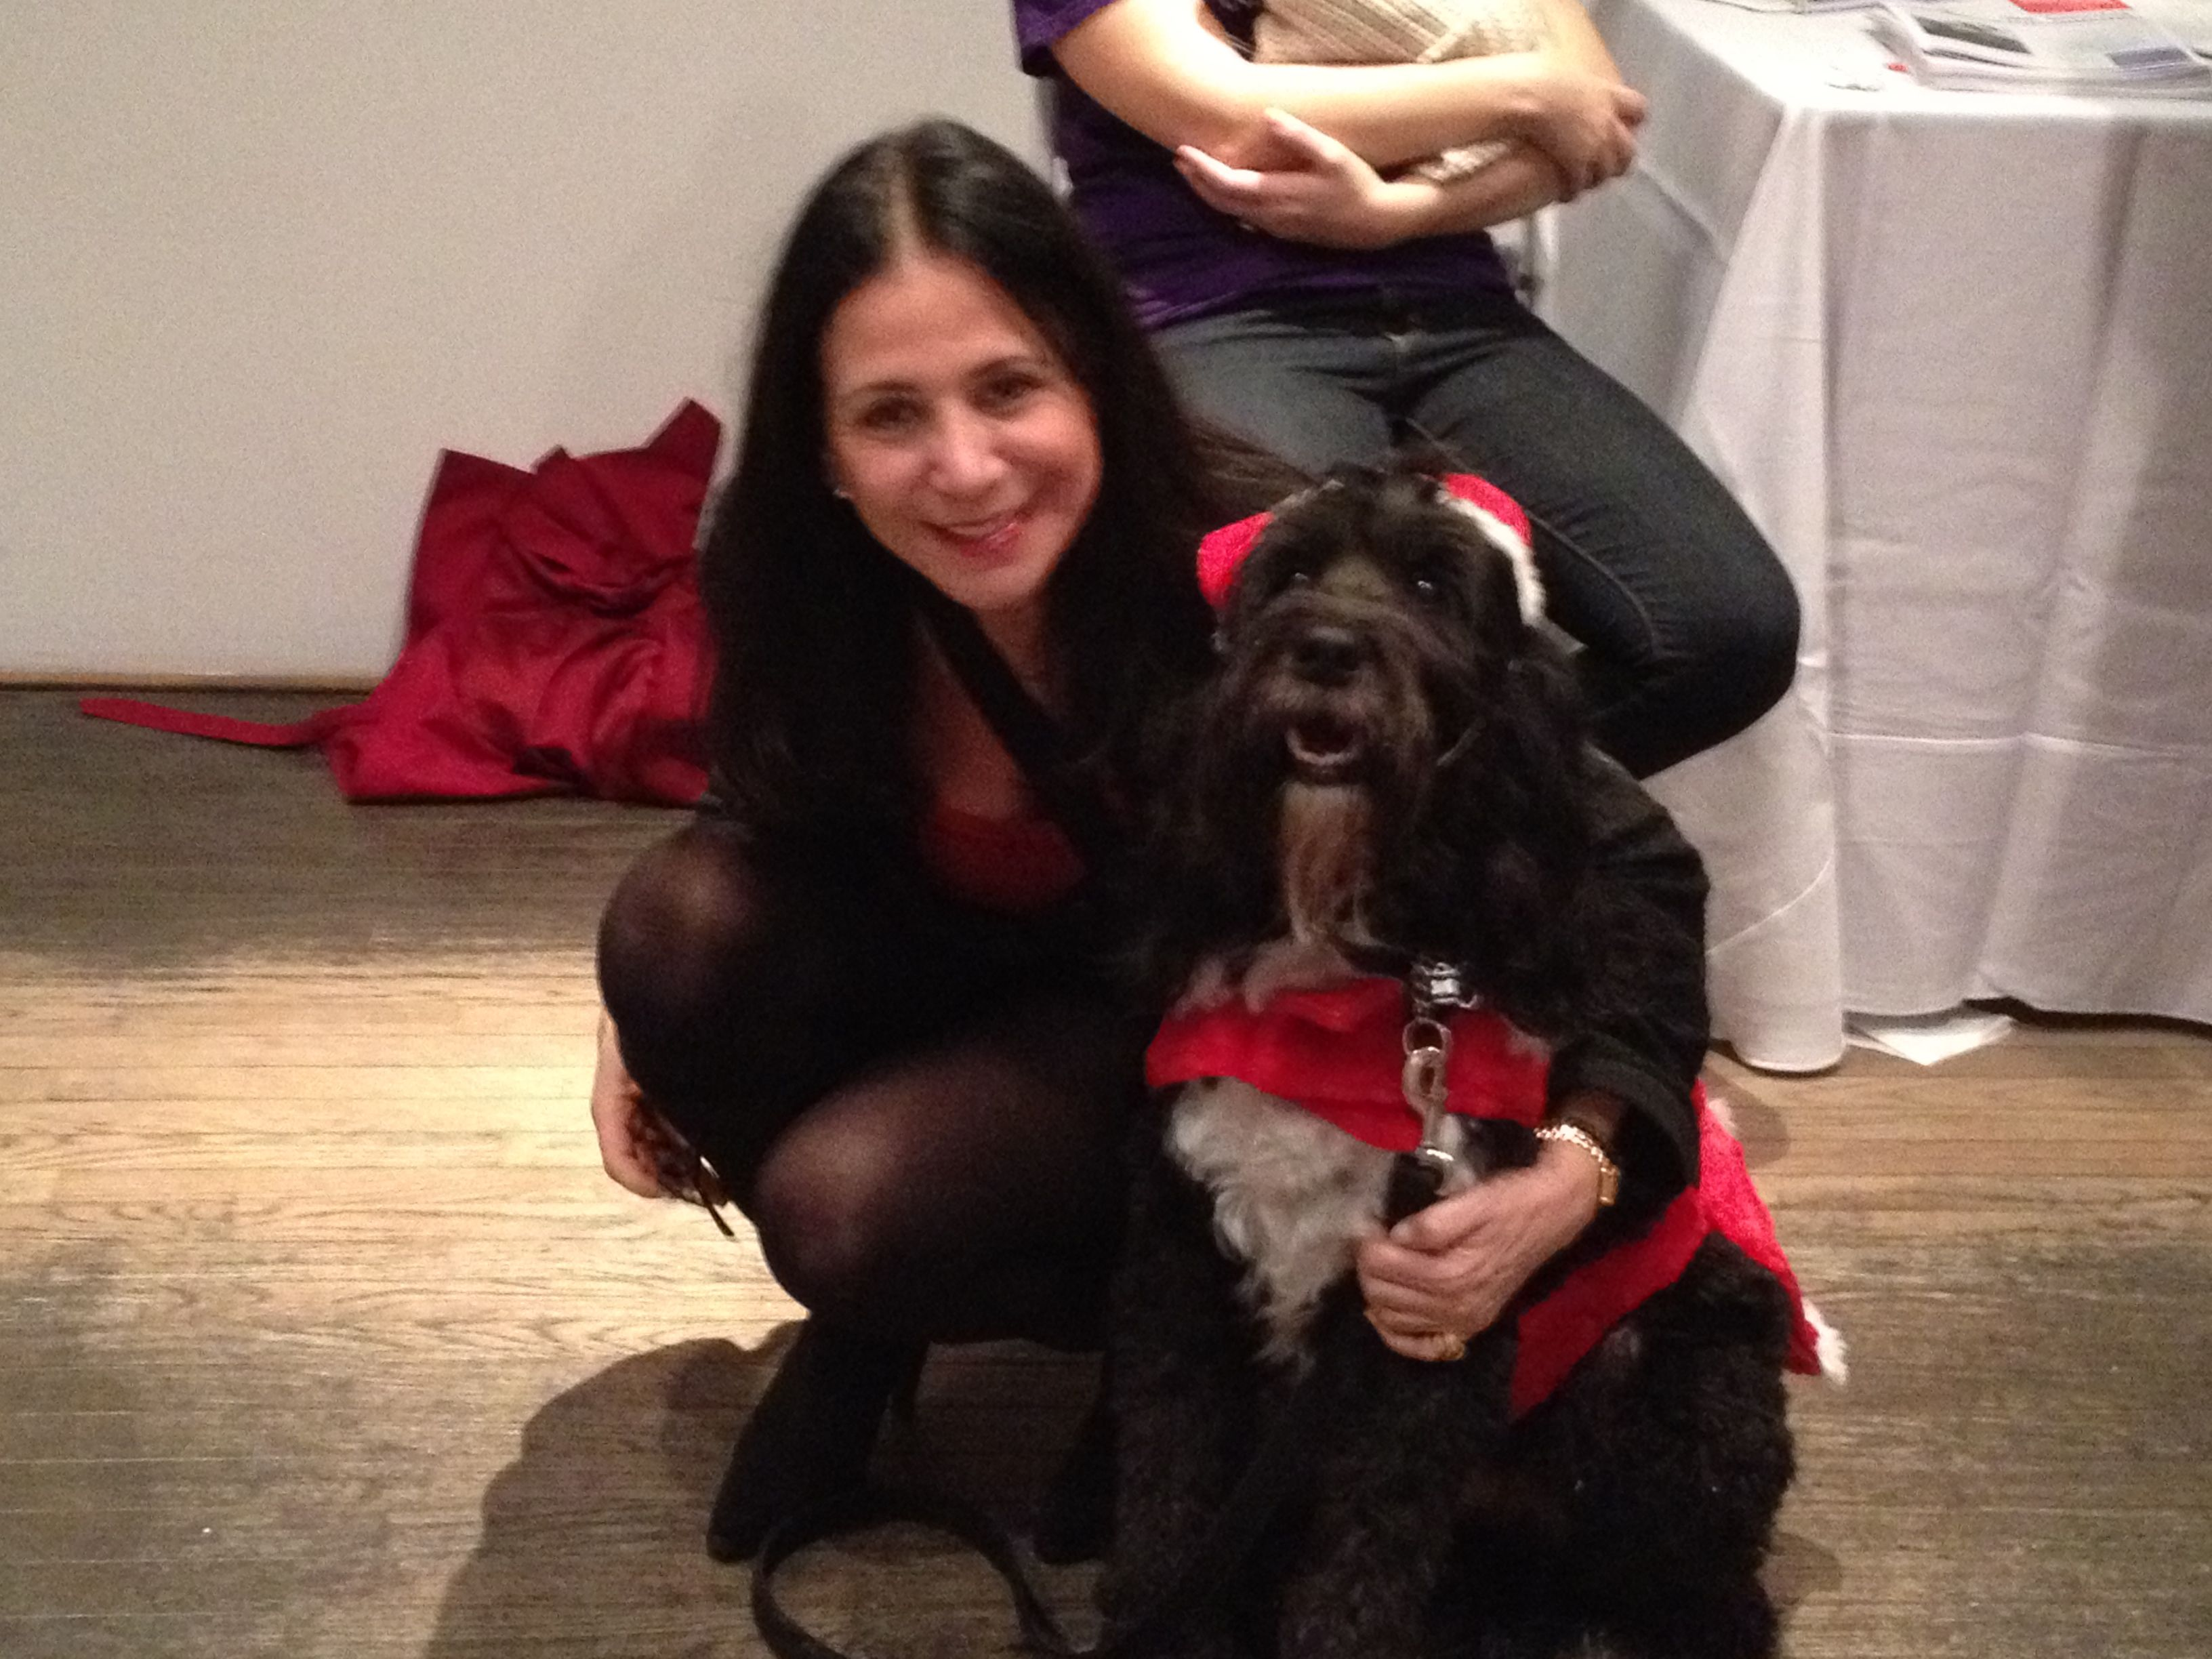 Animal haven benefit 121012 nyc ceo susan traub with